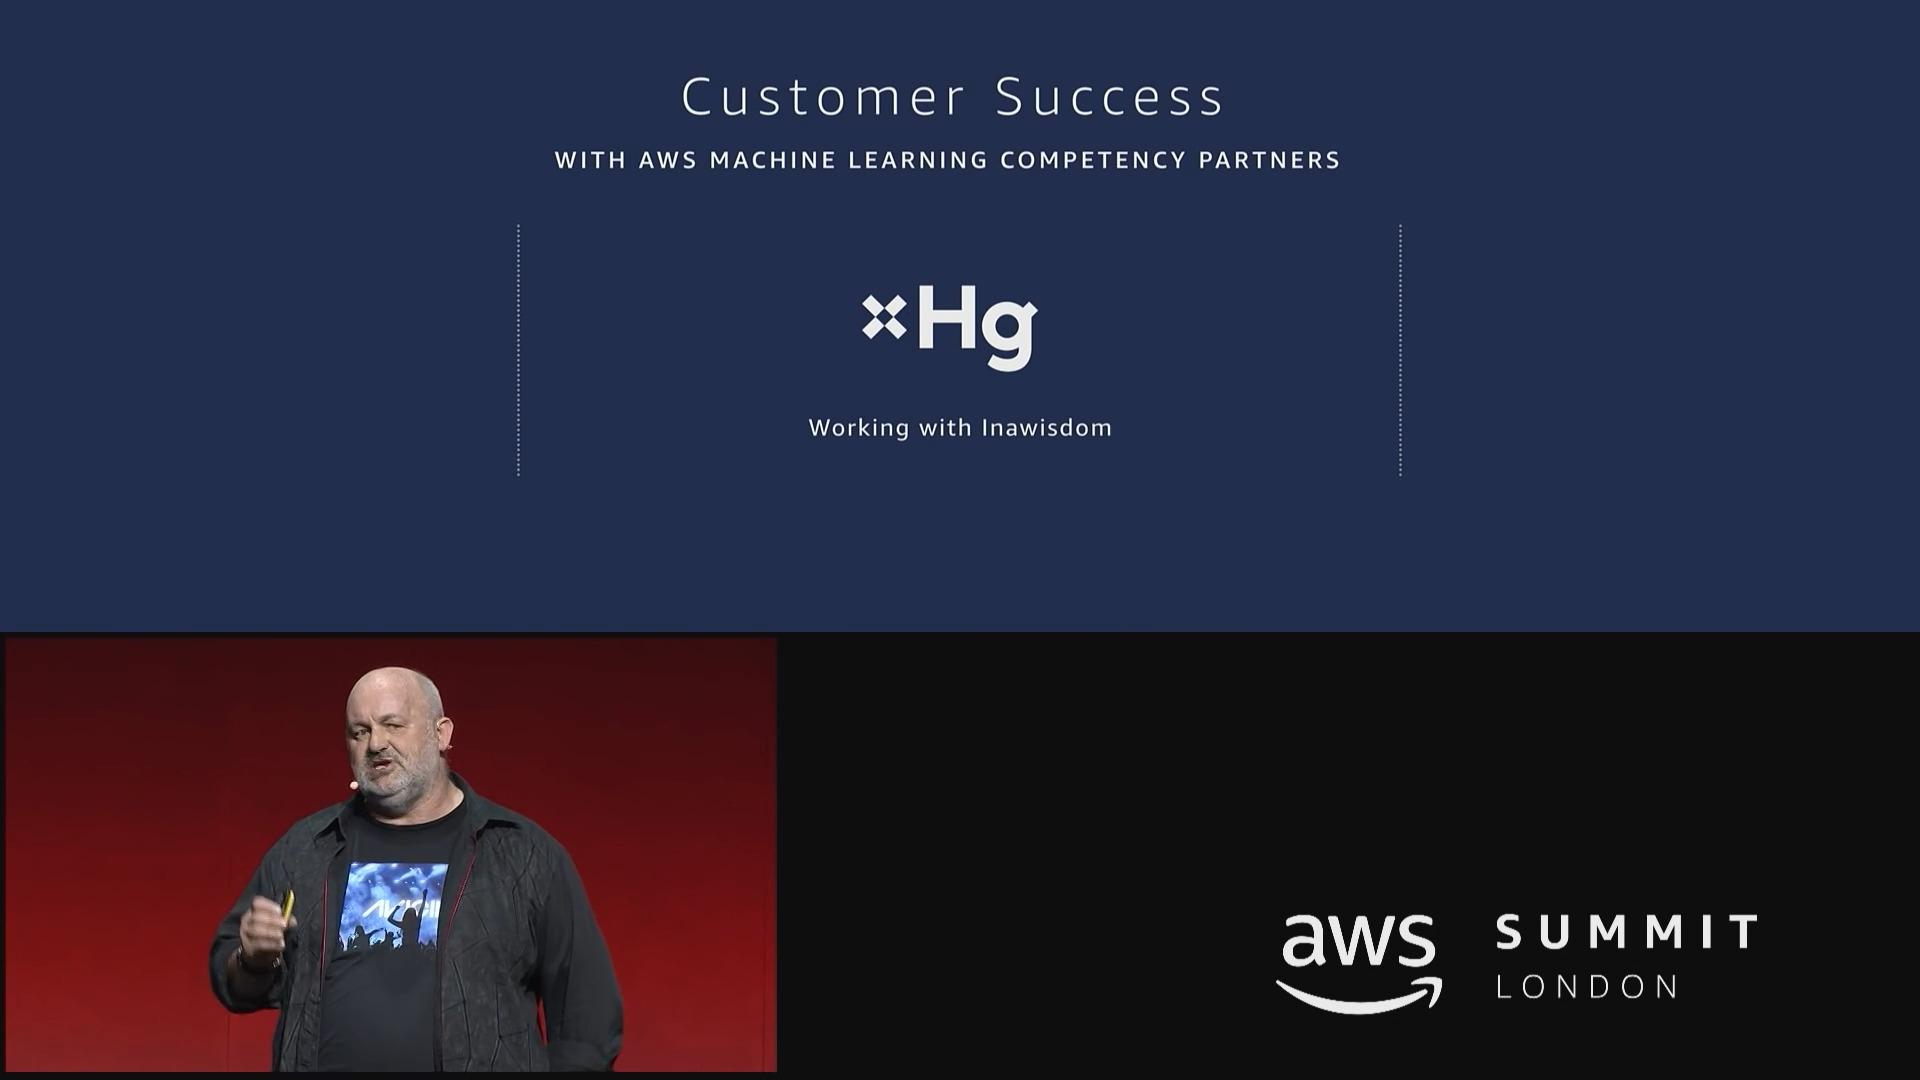 Werner Vogels - Hg case study in AWS London Summit 2018 Keynote